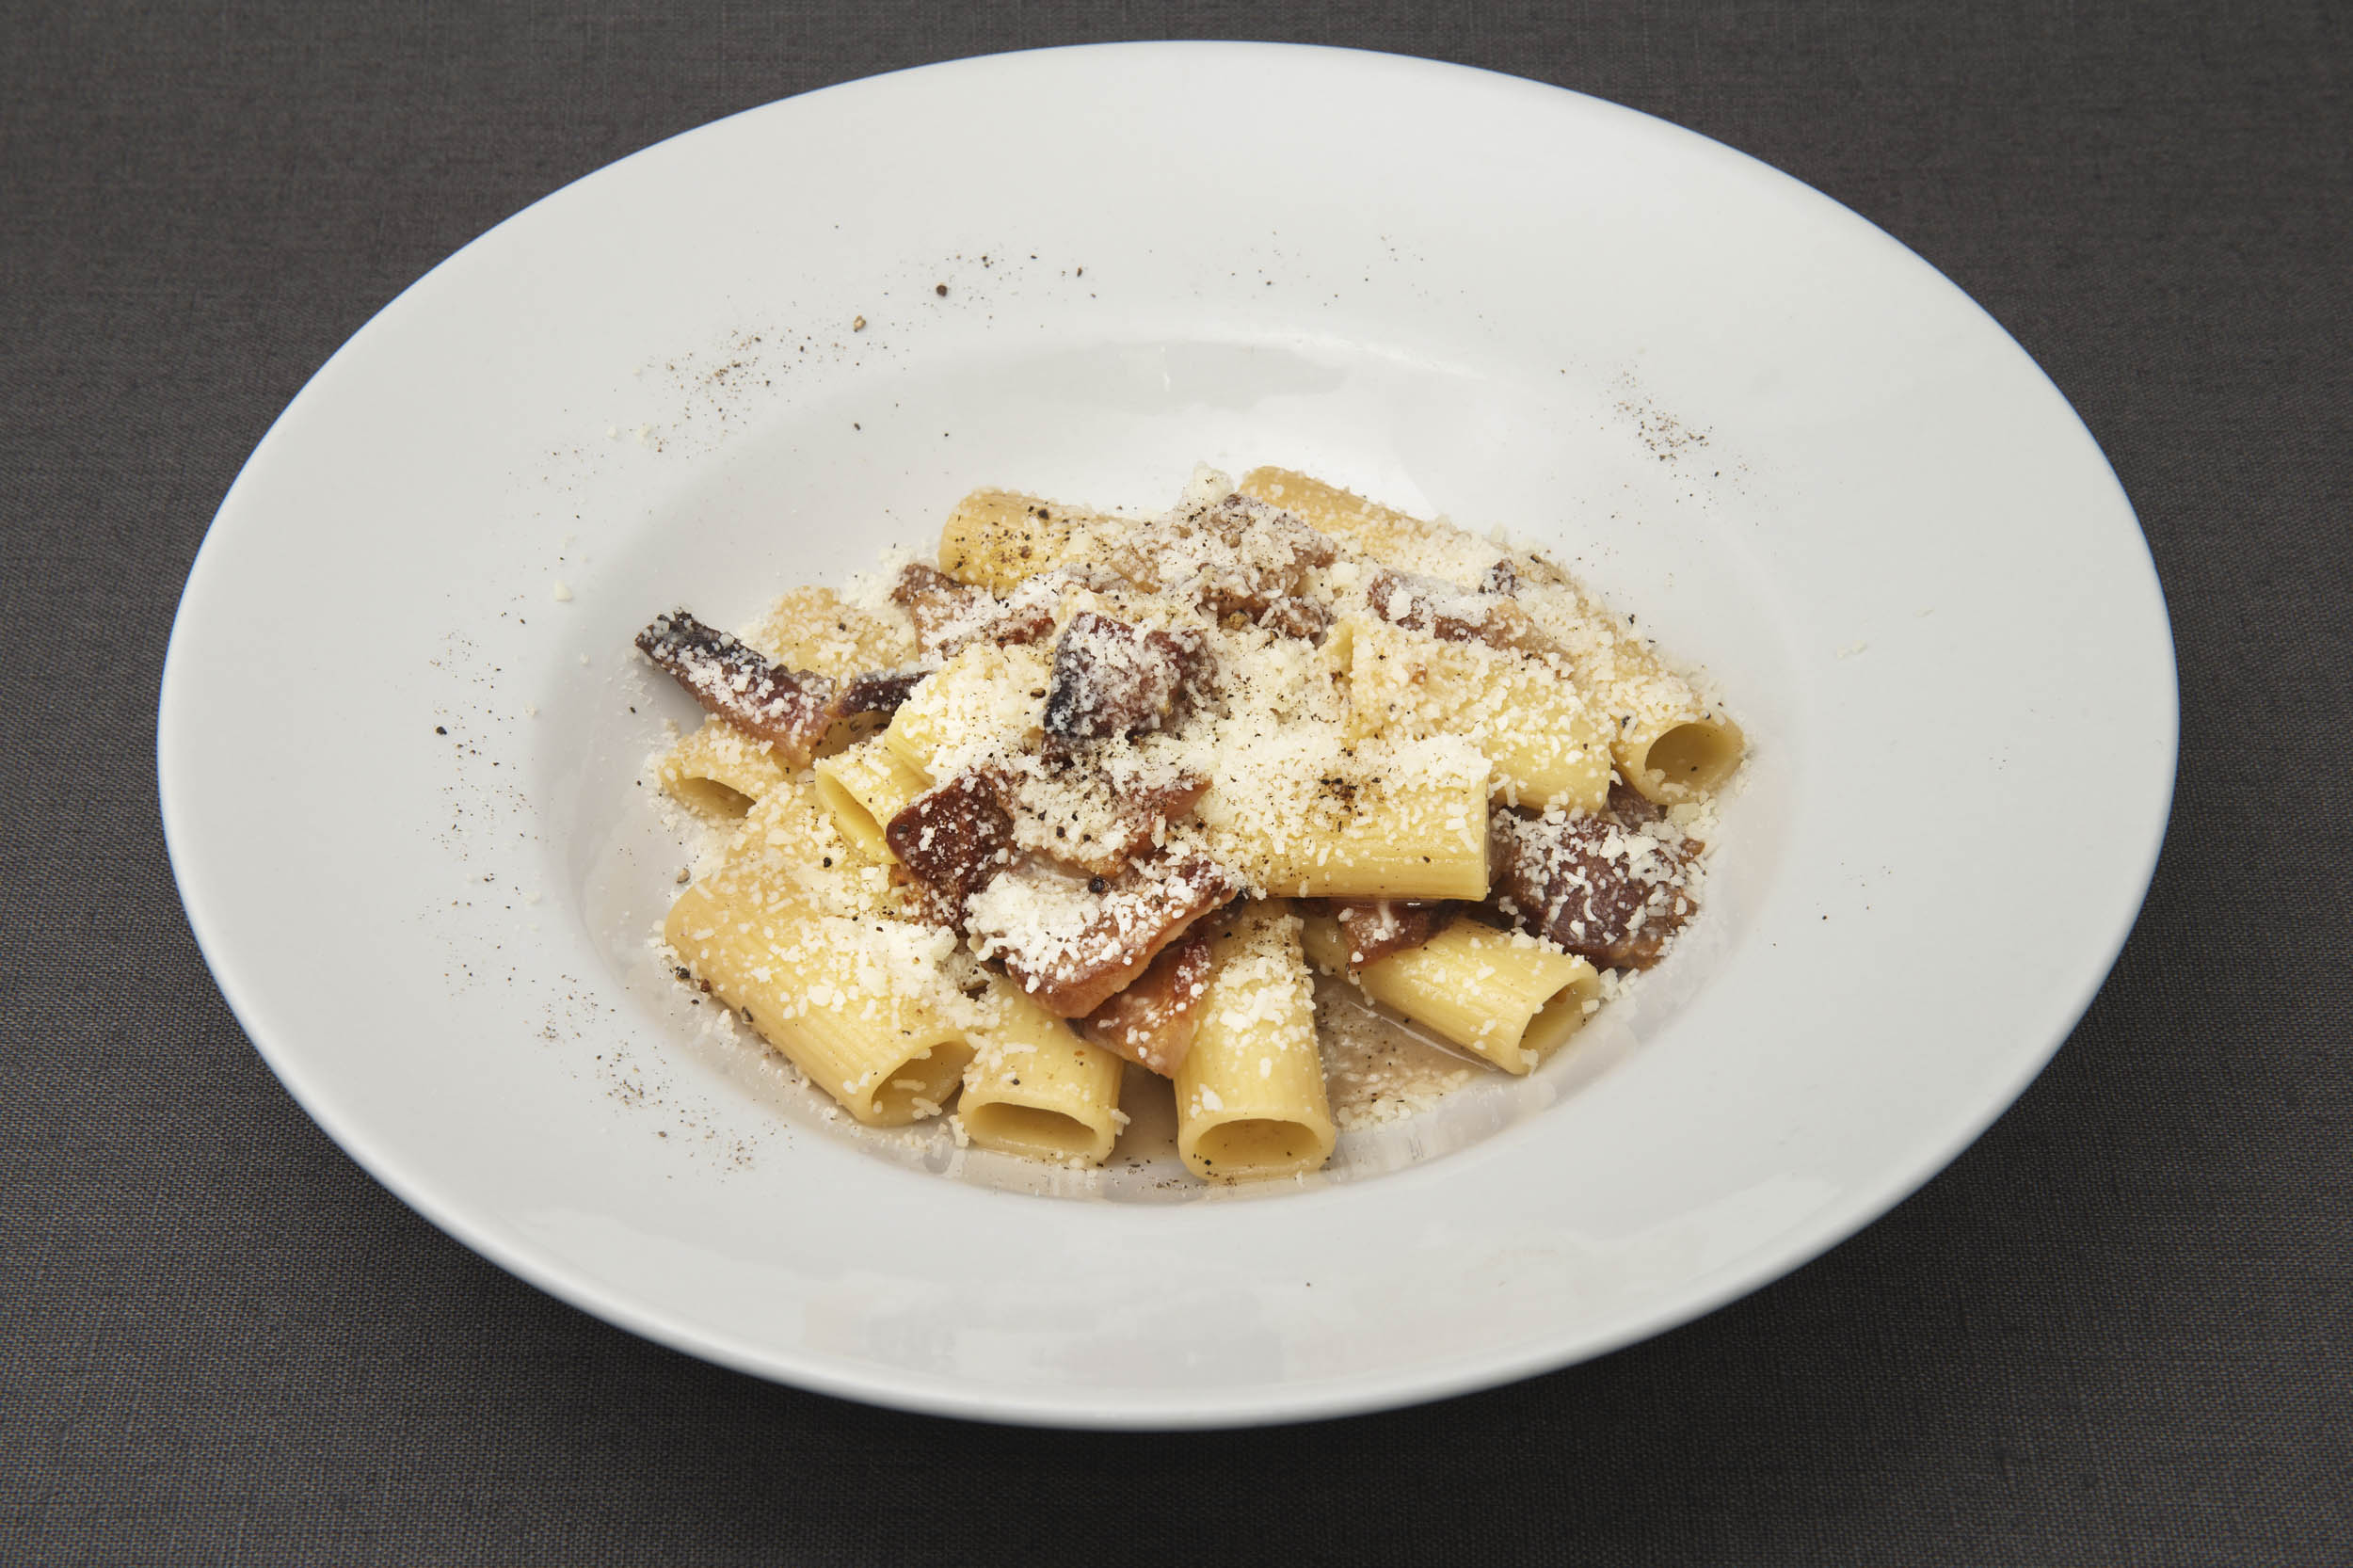 Best Pasta in Rome 2019: Travel Guide According to Top Chefs